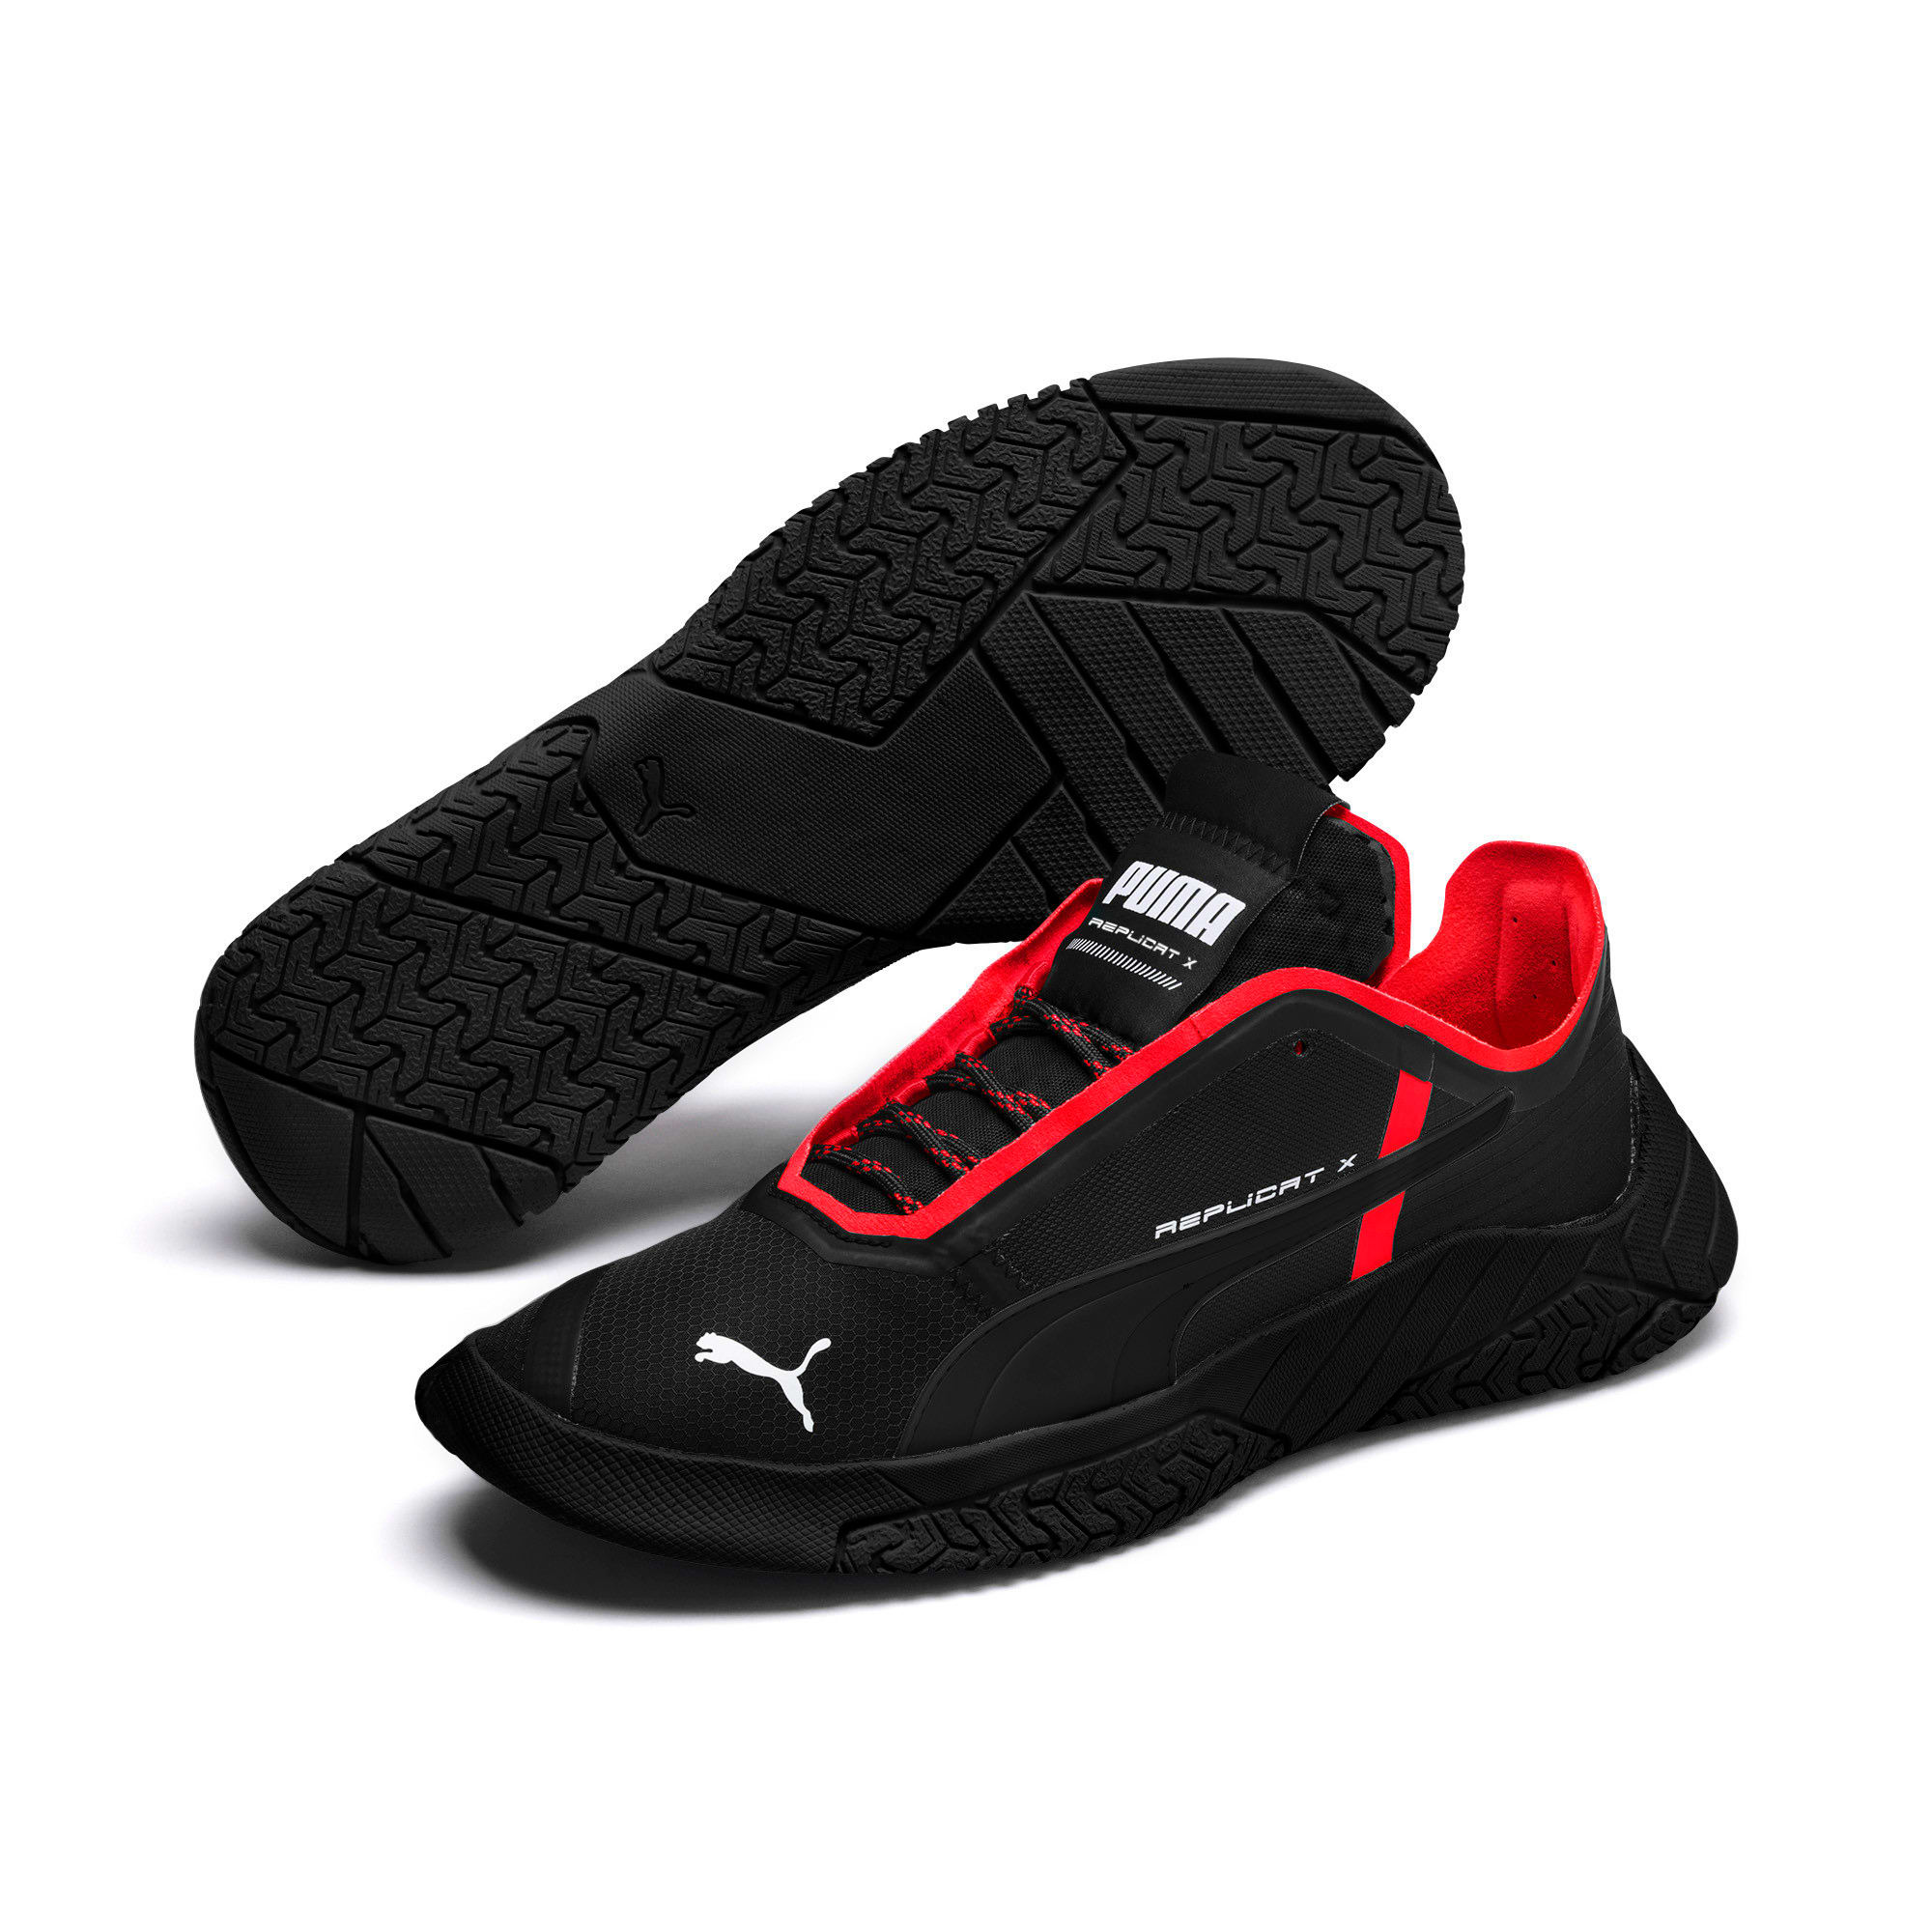 Thumbnail 2 of Replicat-X Circuit Trainers, Puma Black-Puma Red, medium